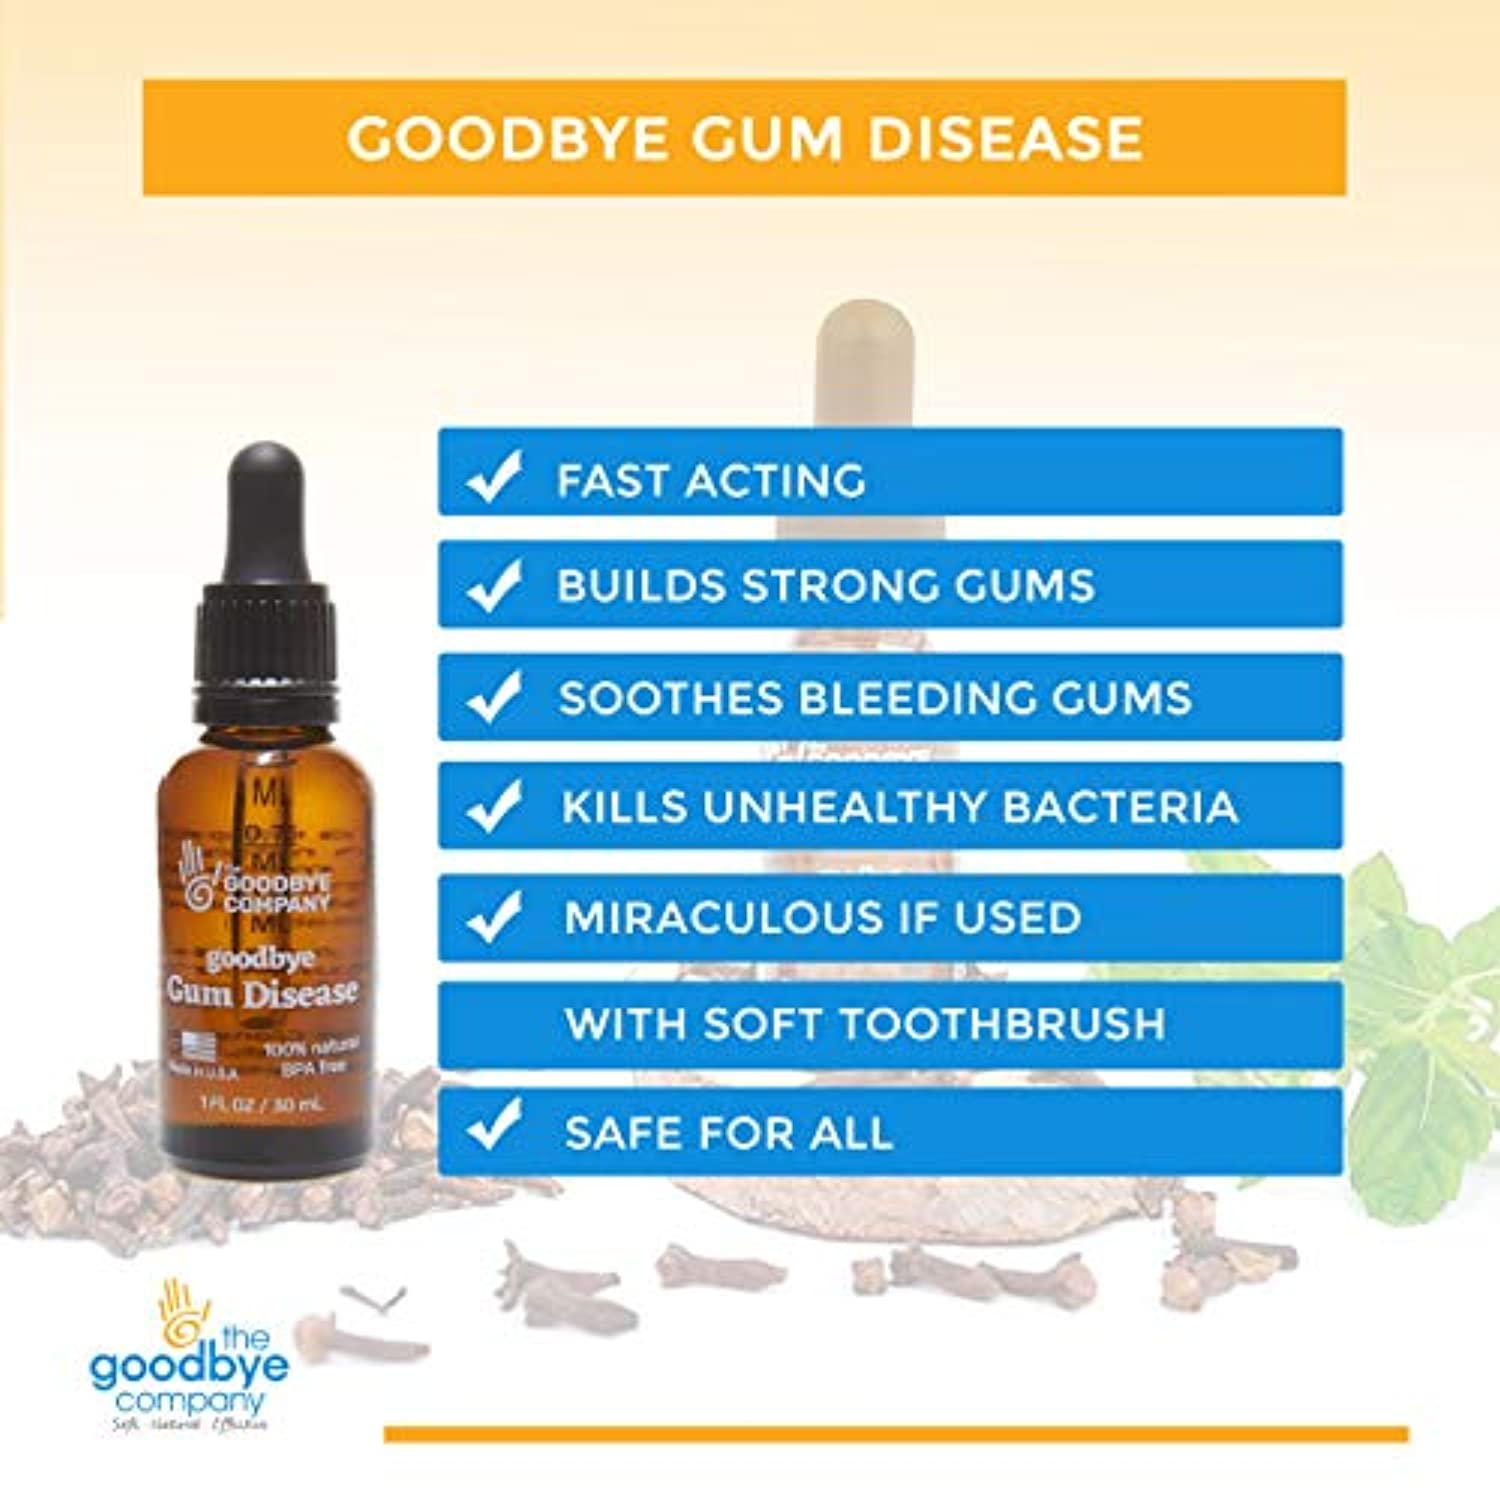 Classier: Buy GoodBye Styes Goodbye Gum Disease - Organic Home Remedy for Oral Gum Disease | 100% Pure Neem and Clove Essential Oils for Oral Care | Effective and Natural Gingivitis Treatment (1 oz)